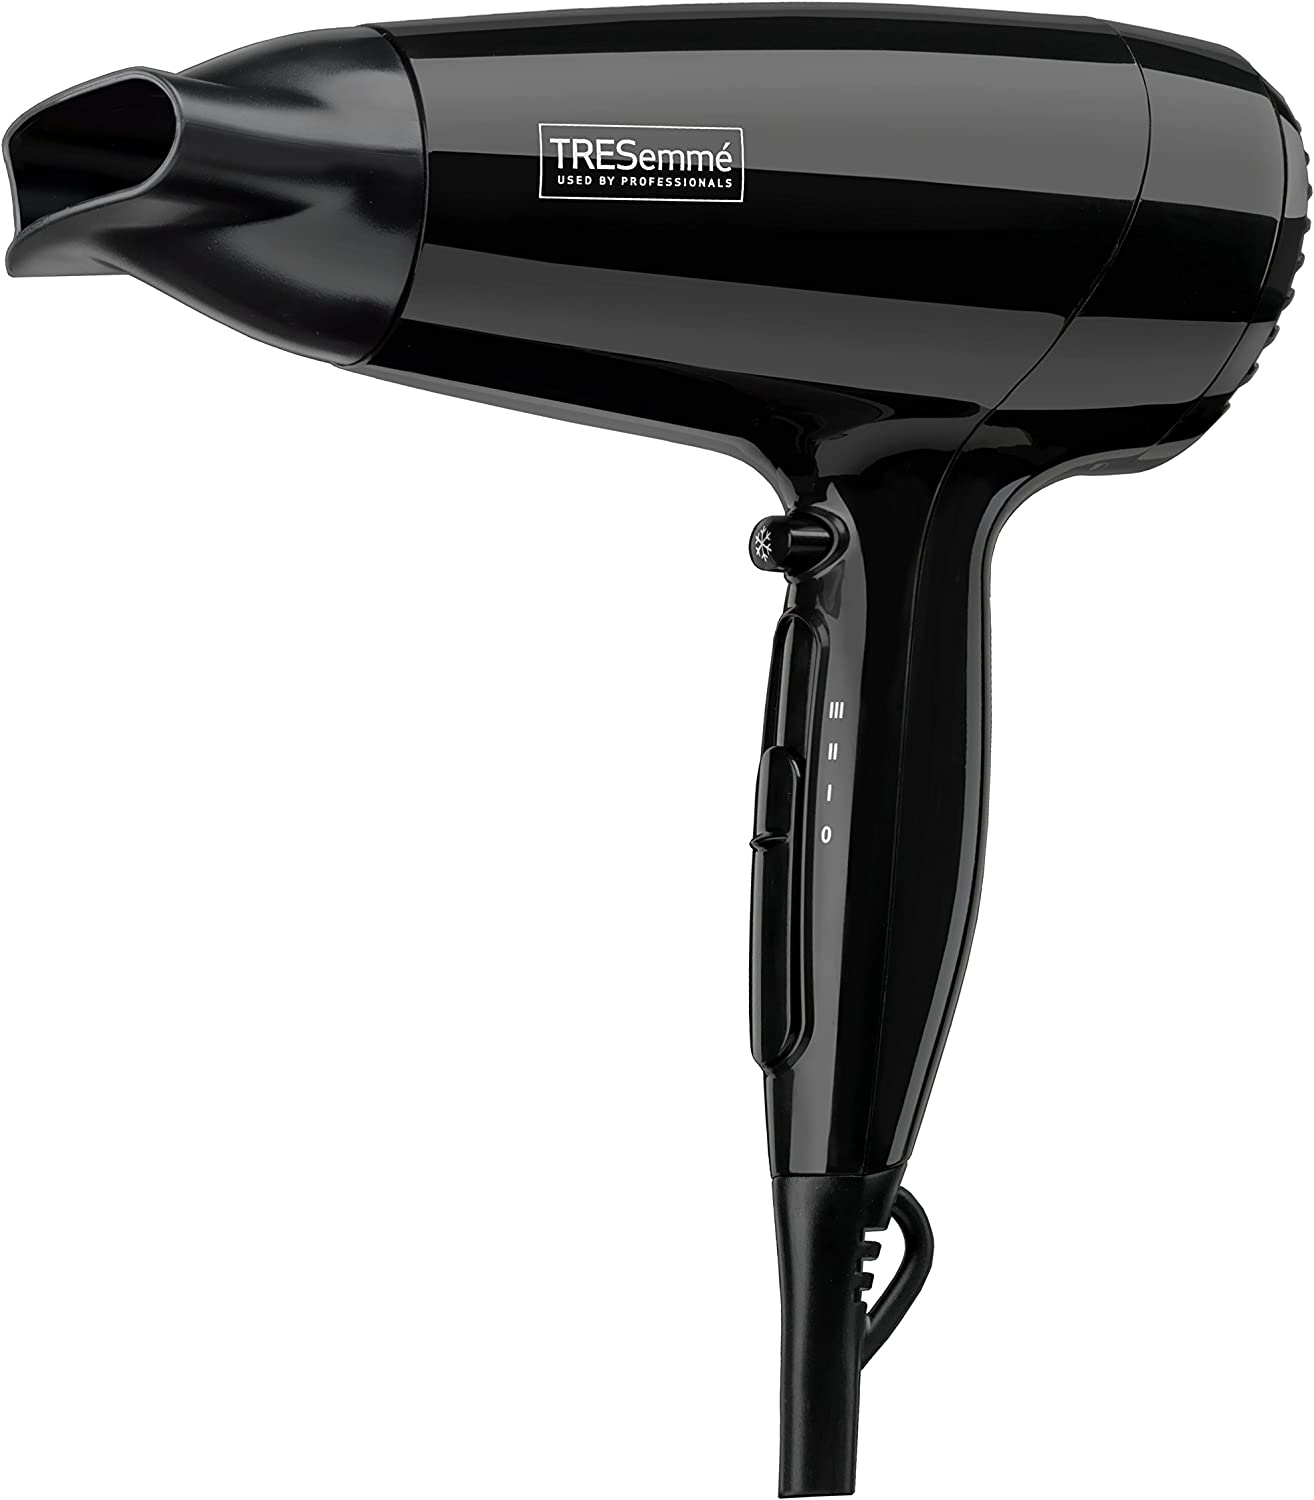 TRESemme 2000 W Fast Hair Dryer reviews